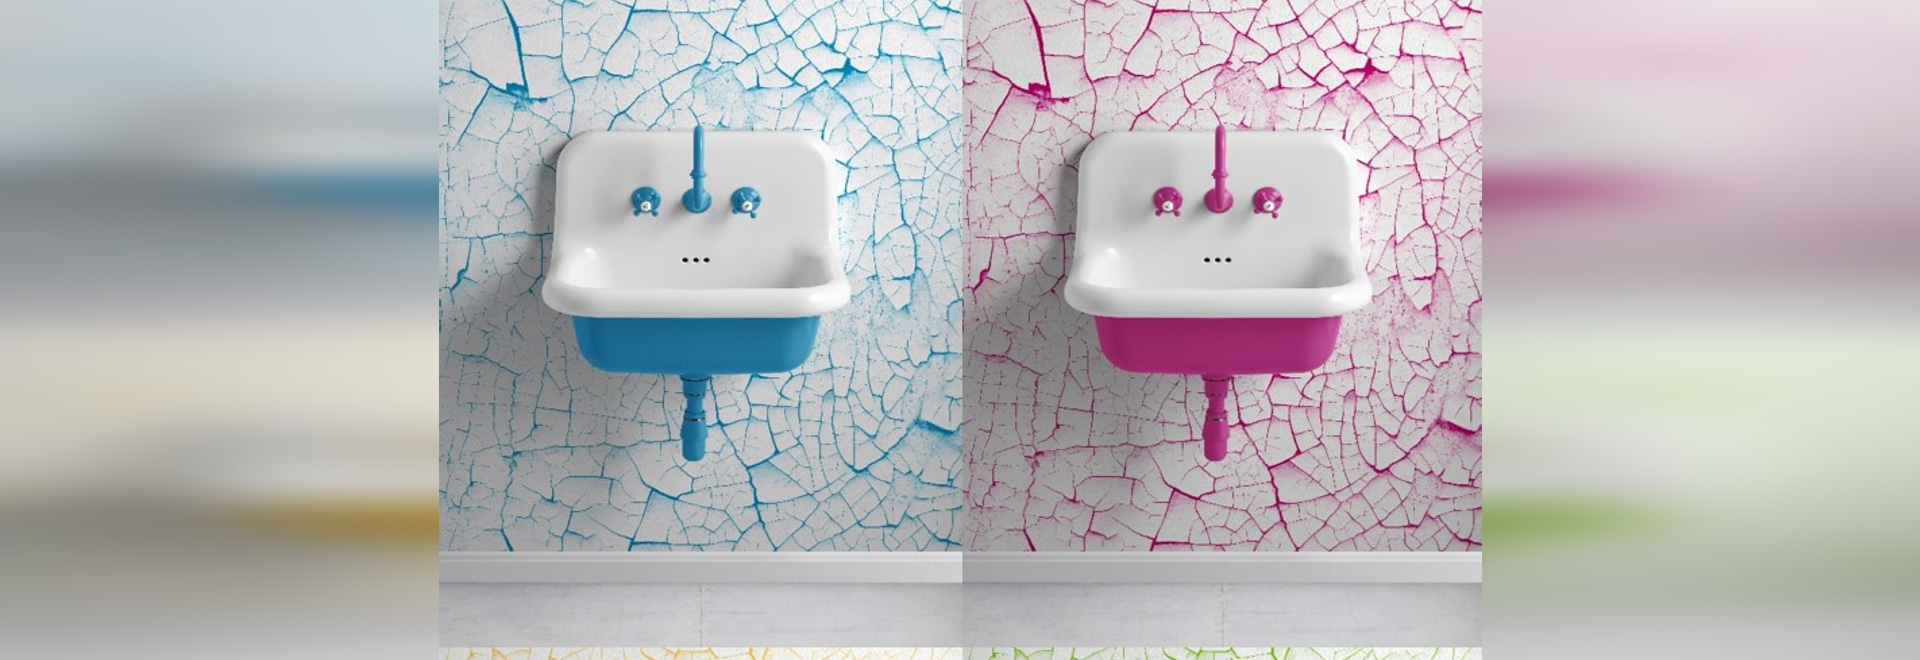 TrueColors 60cm basins by Bleu Provence